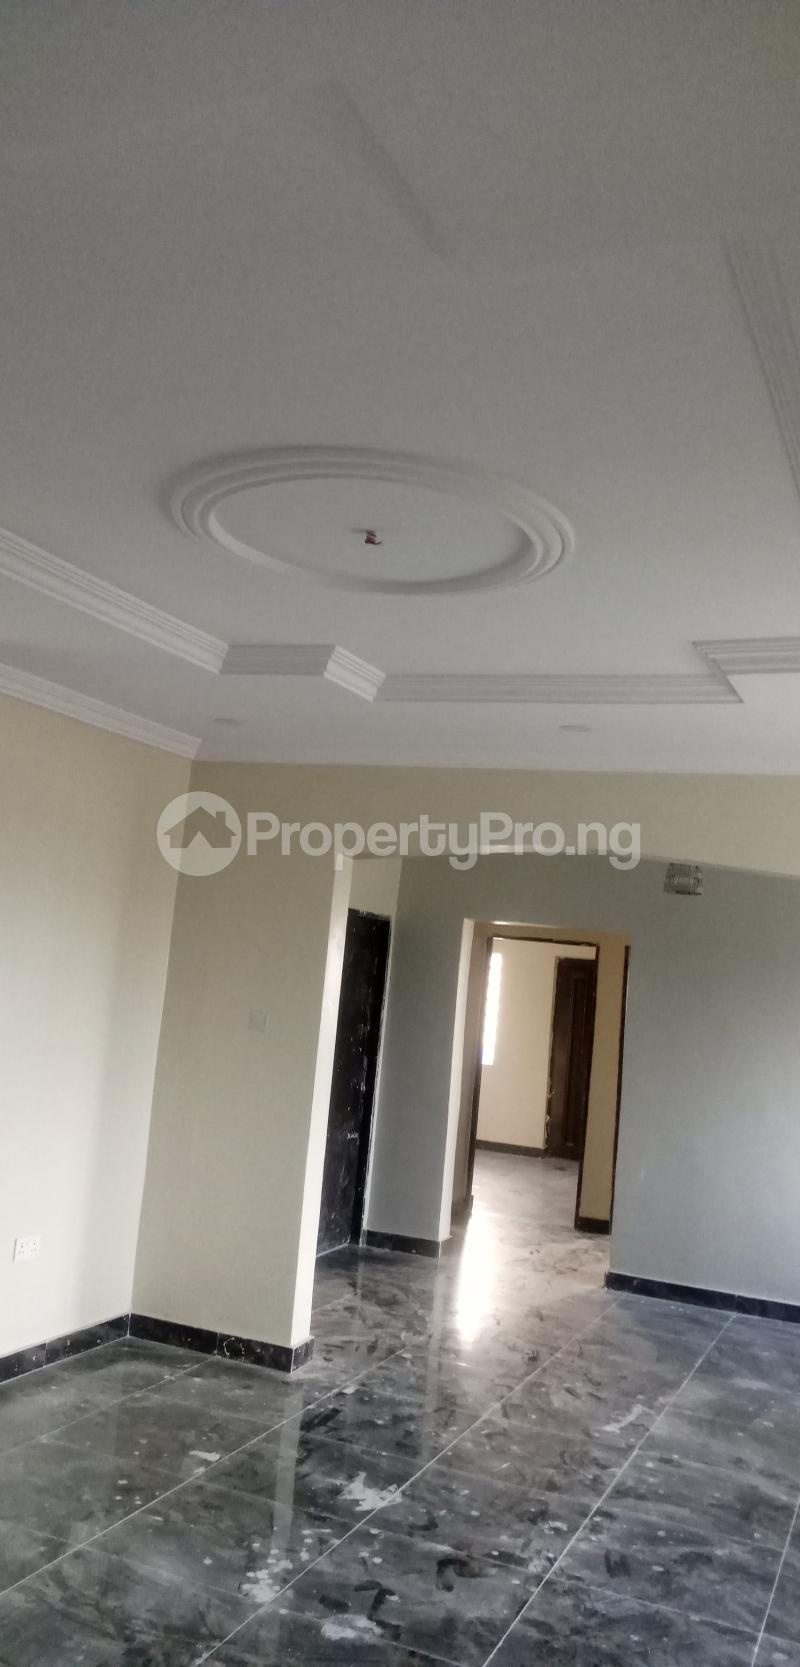 2 bedroom Flat / Apartment for rent Badore Ajah Lagos - 26